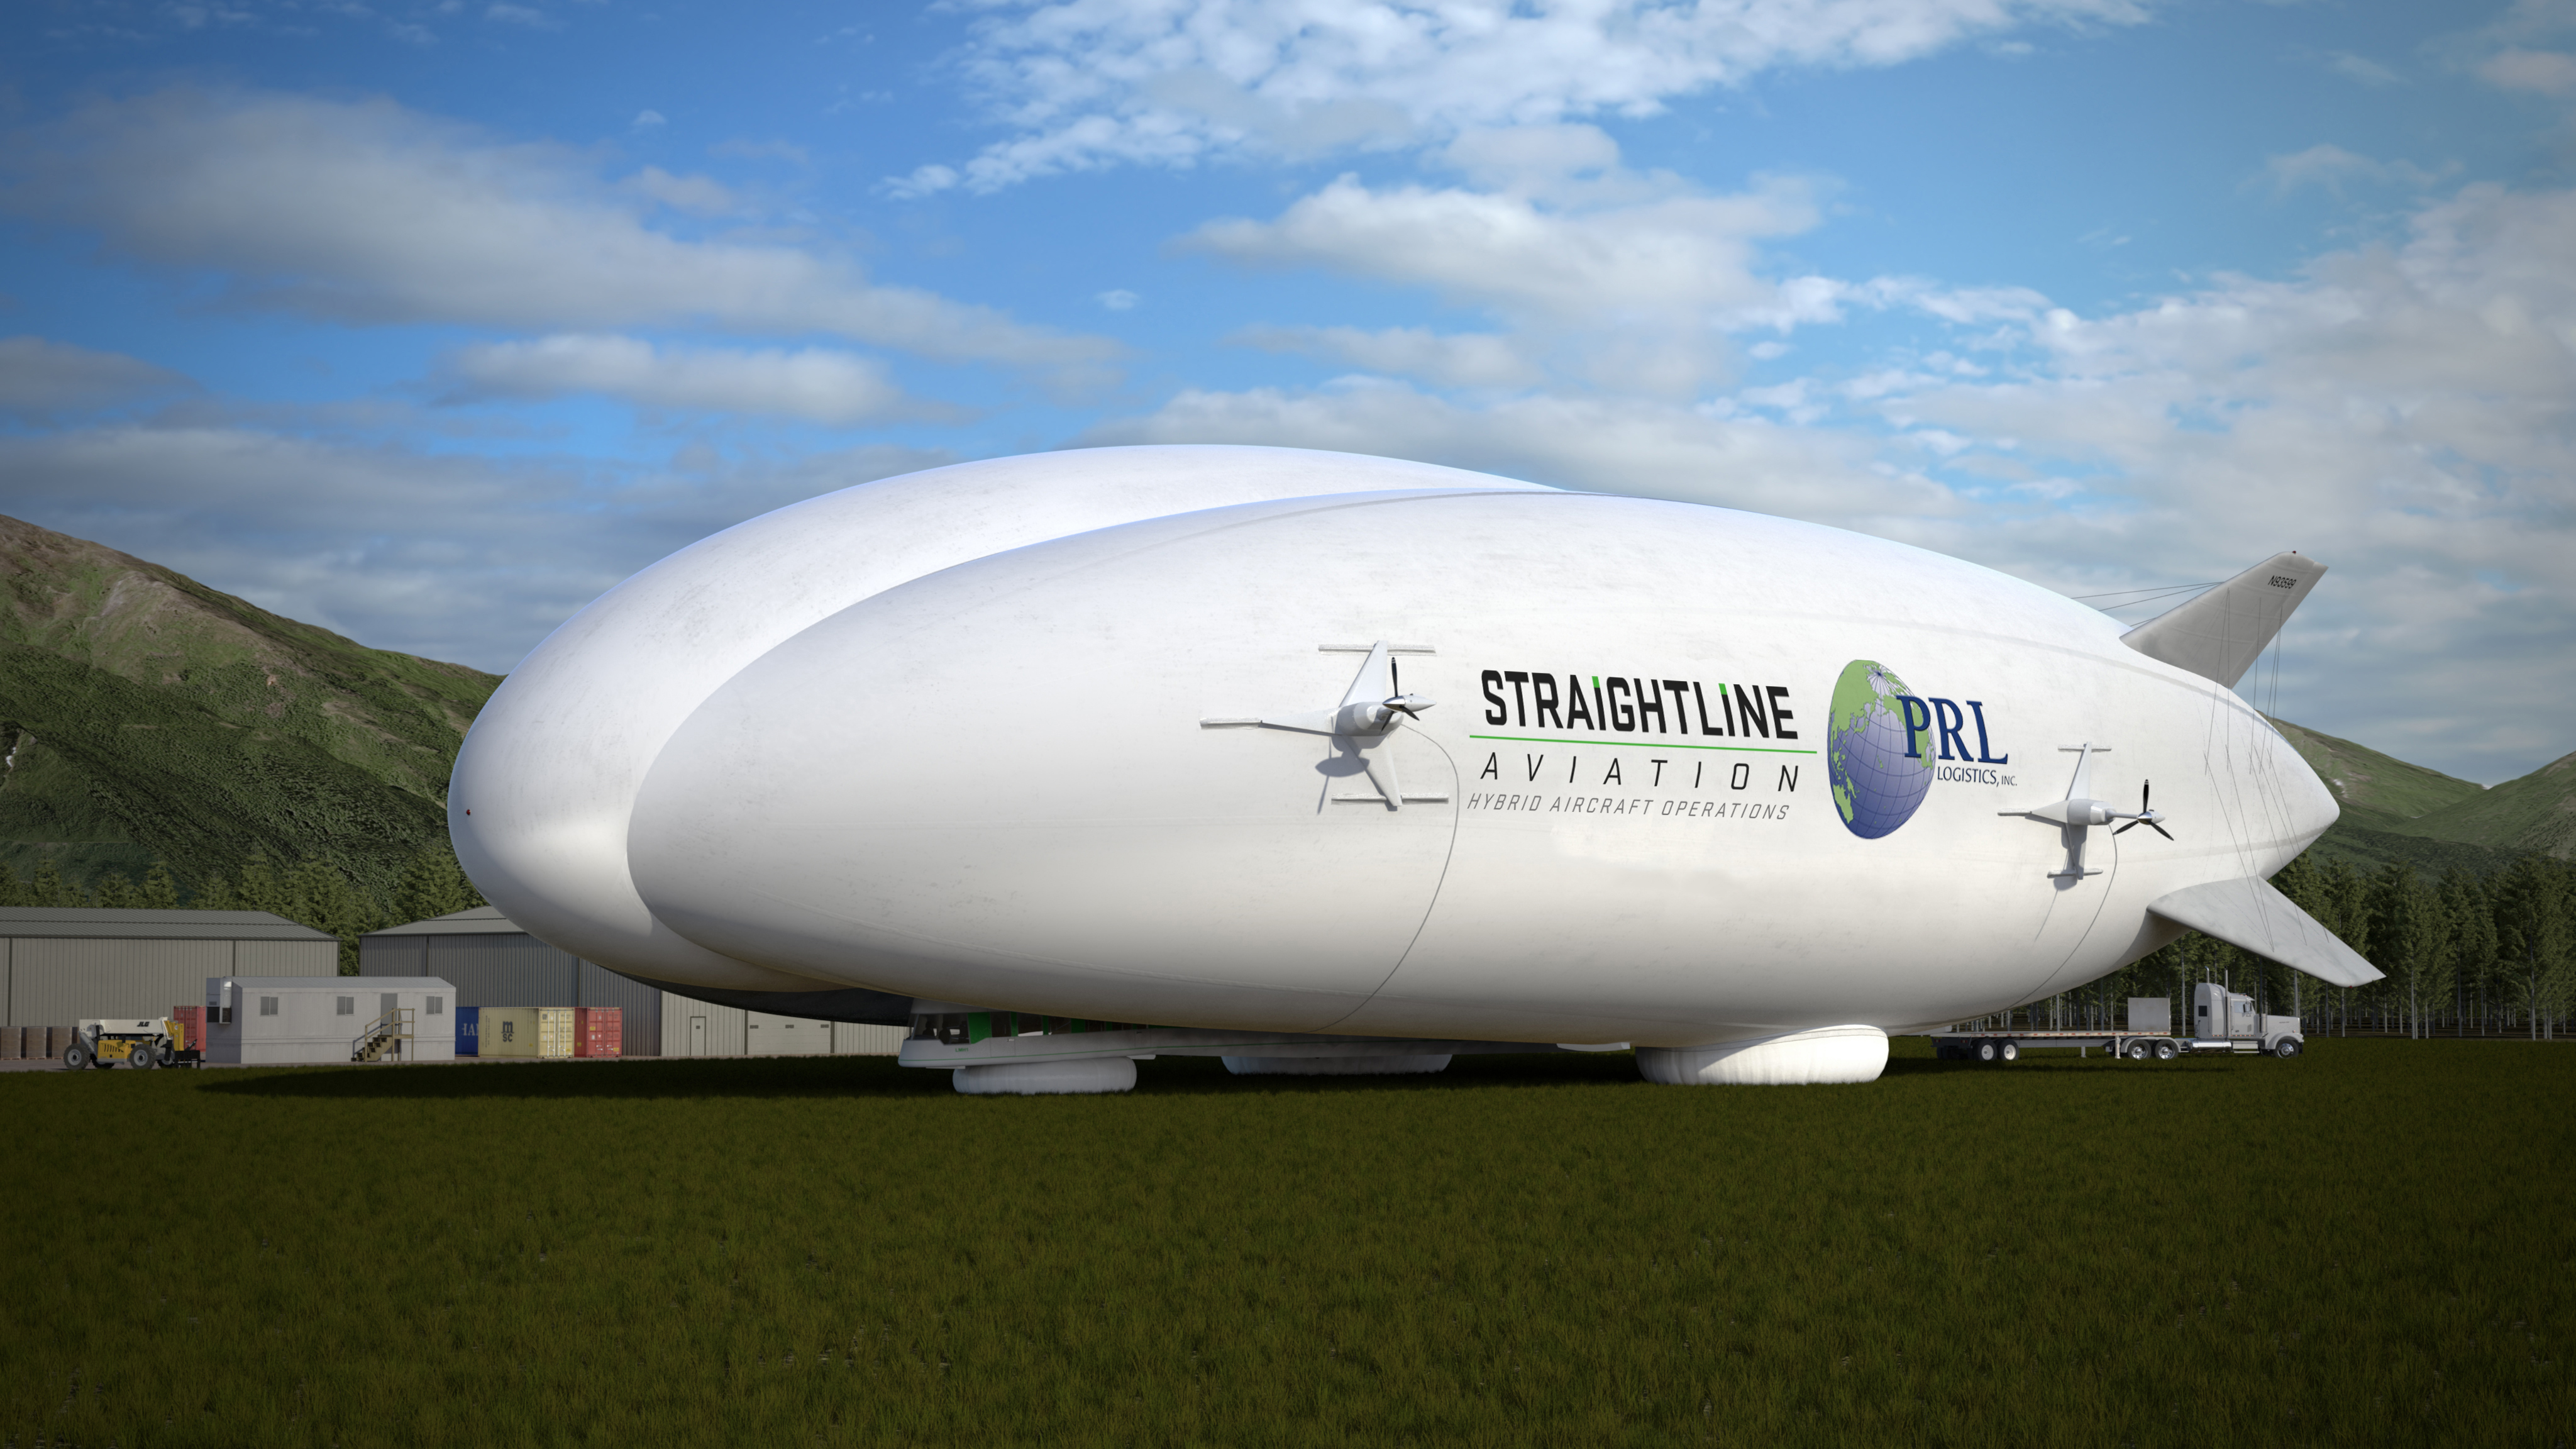 PRL-SLA-AIRSHIP-VISUAL-01A